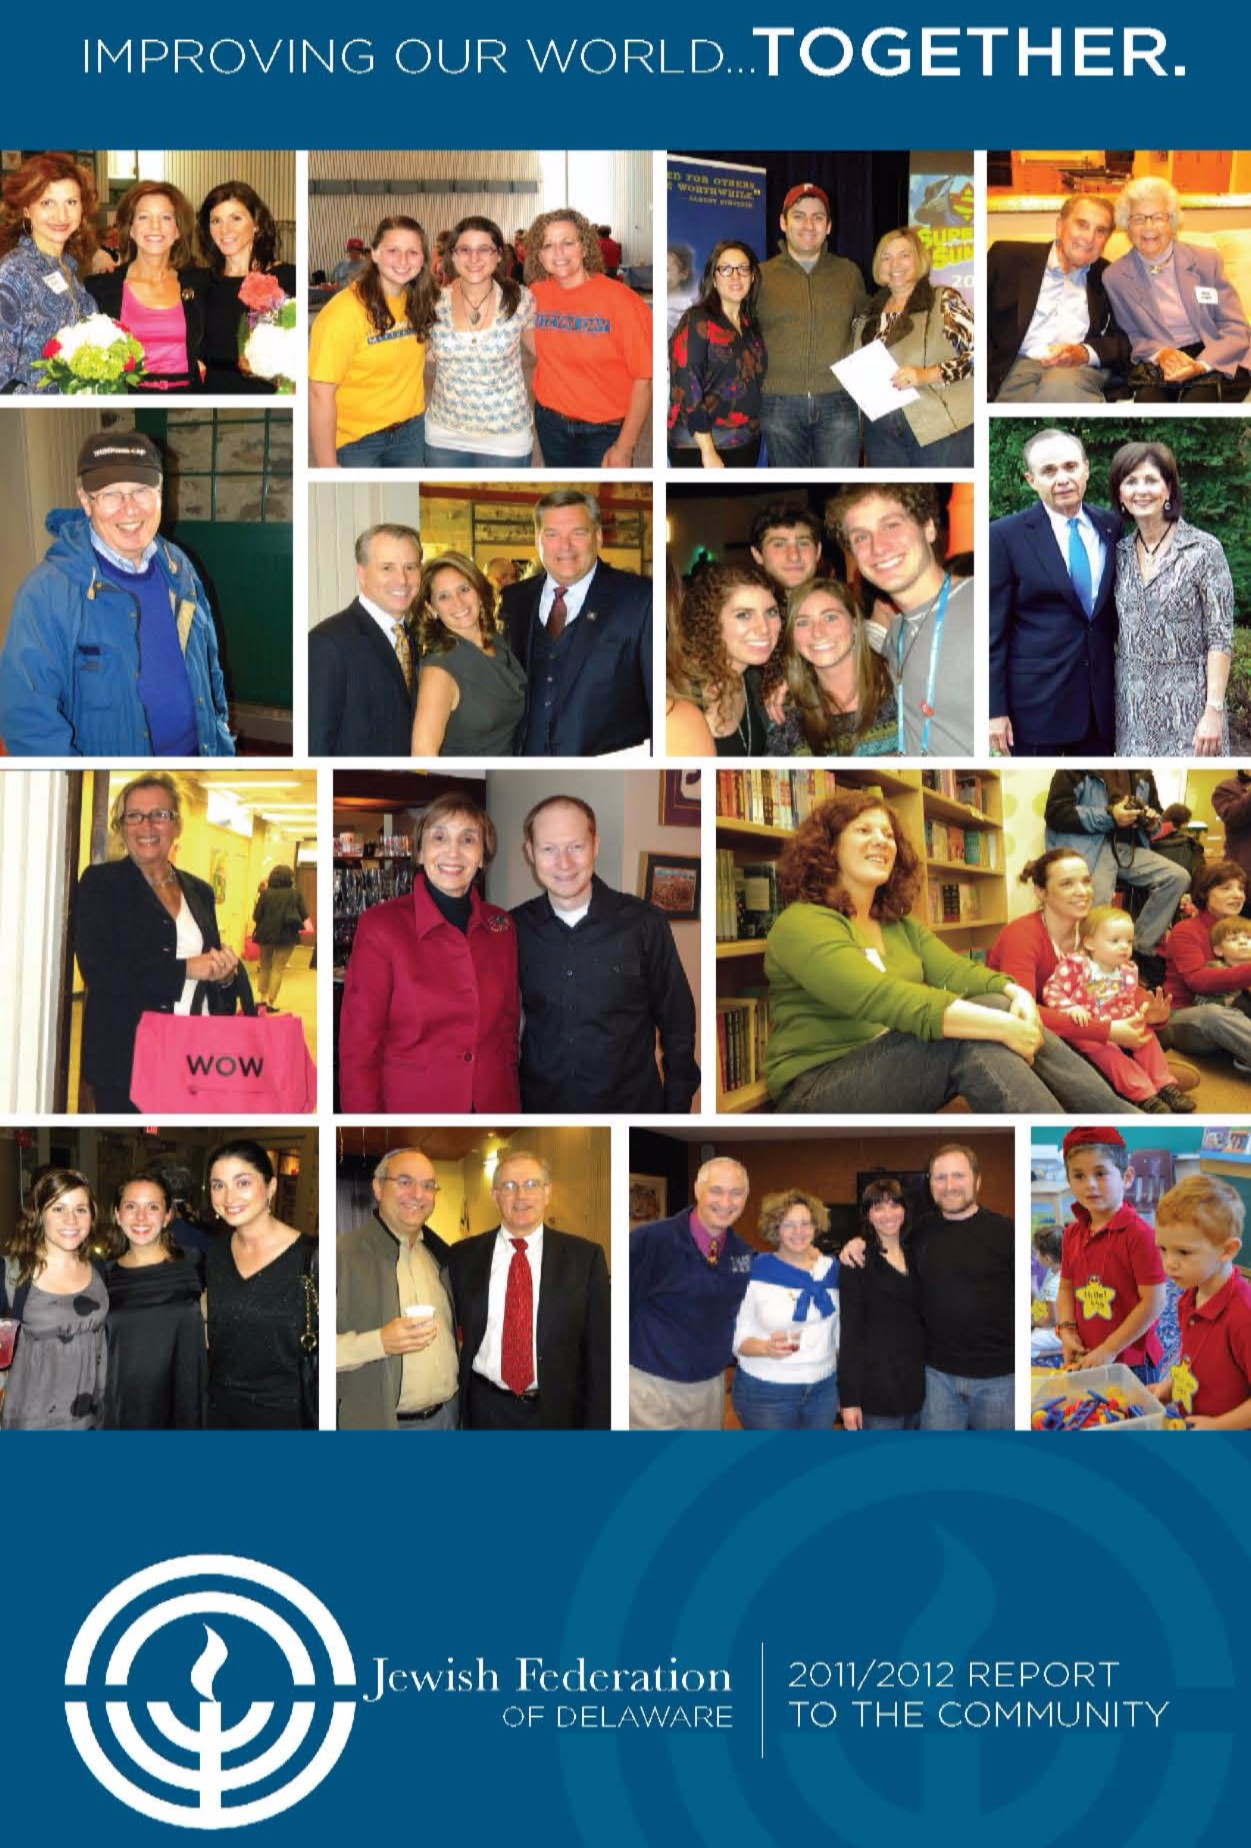 Click HERE to view the 2011-2012 Report to the Community